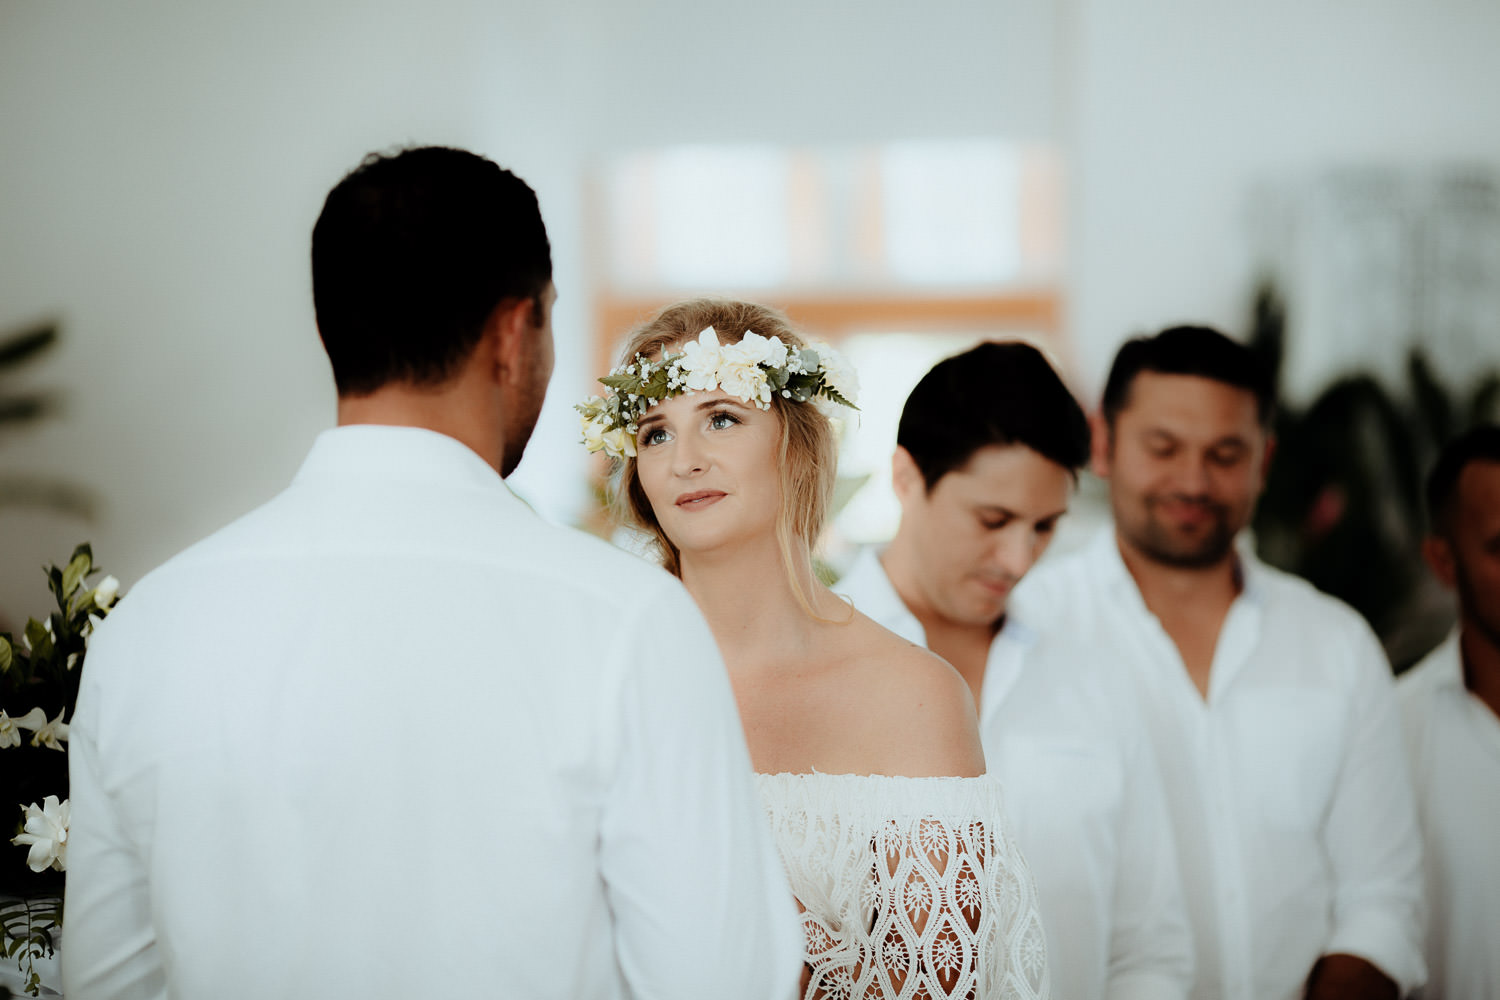 Rorotongan-wedding-photographer-57658.jpg